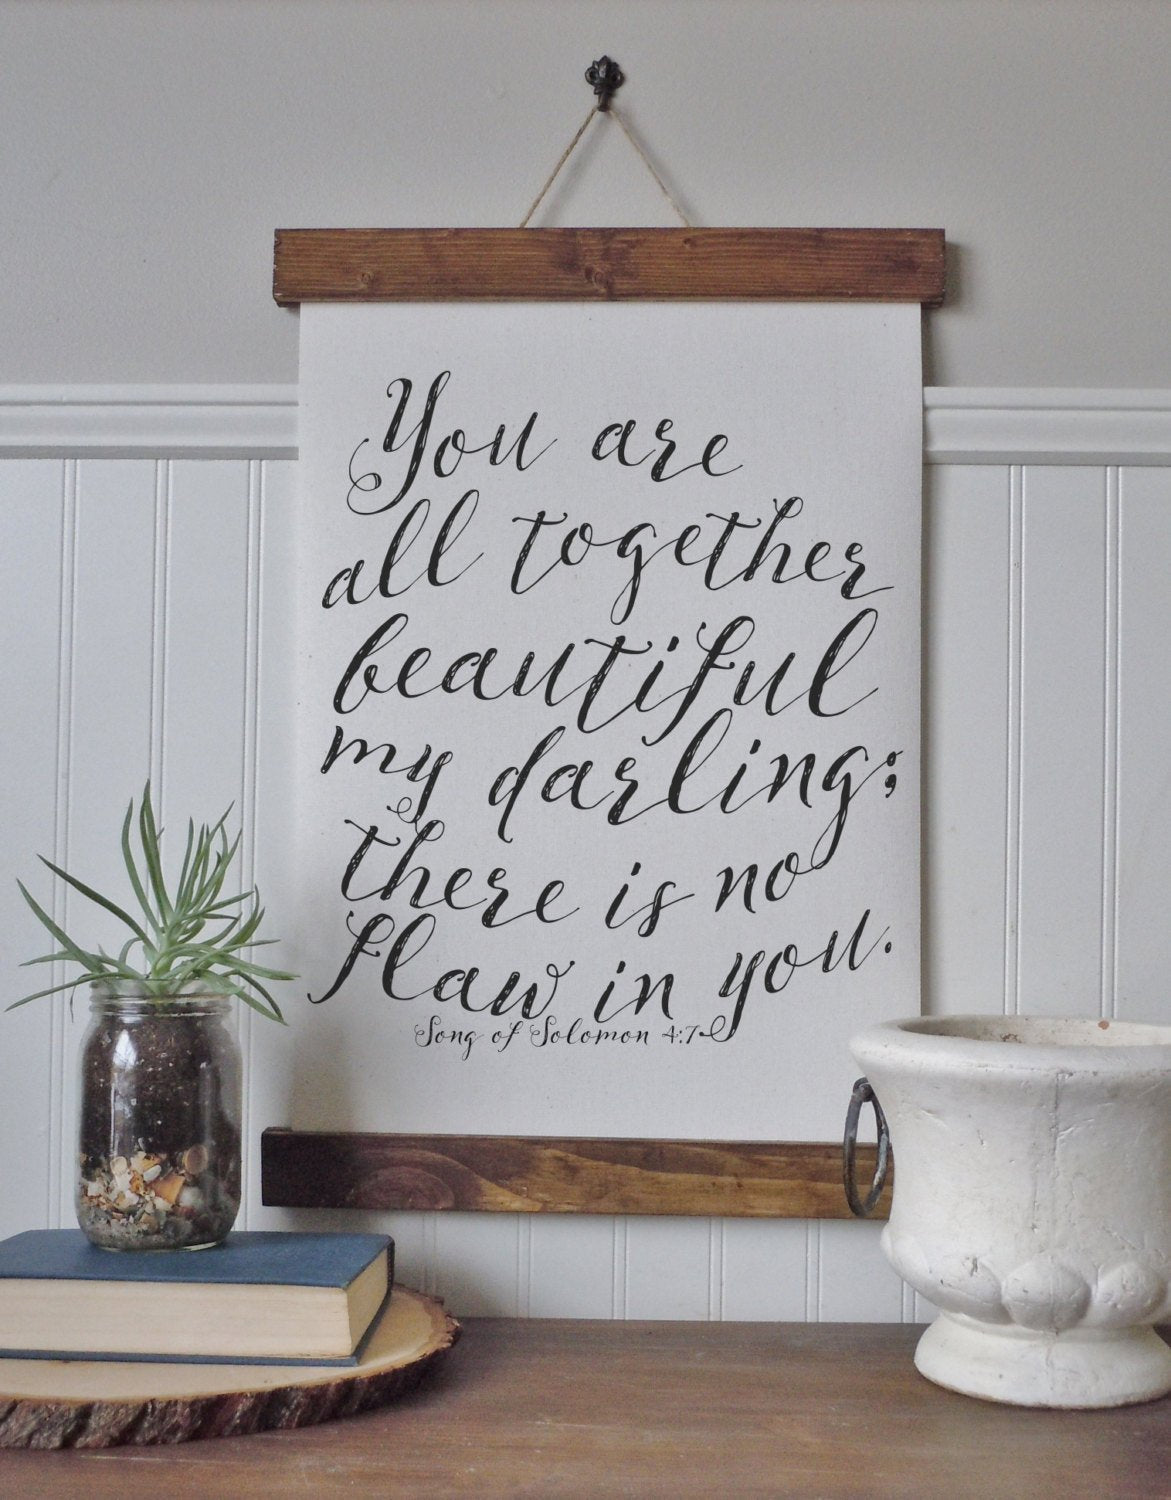 You are all together beautiful, my darling/there is no flaw in you/canvas print/calligraphy sign//framed art/home decor/wall art